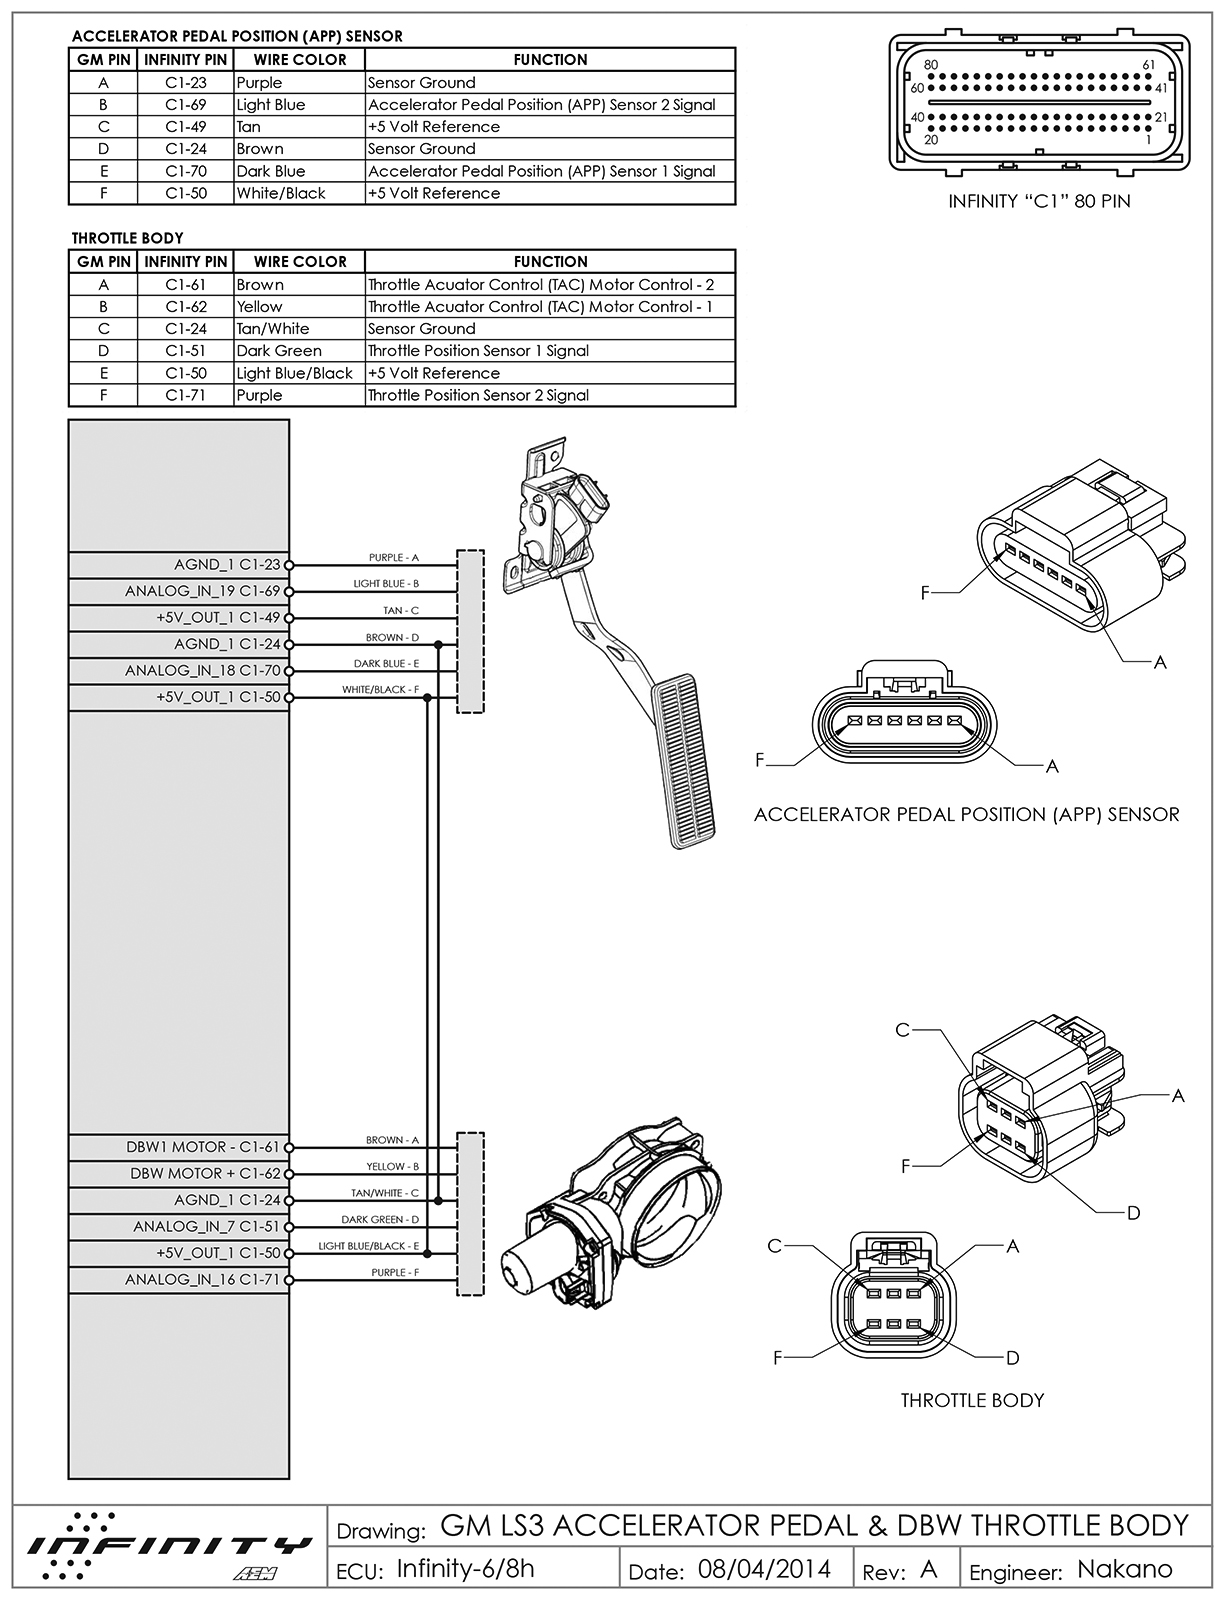 Wire Sensor Wiring Diagram Additionally Car Fuel System Diagram